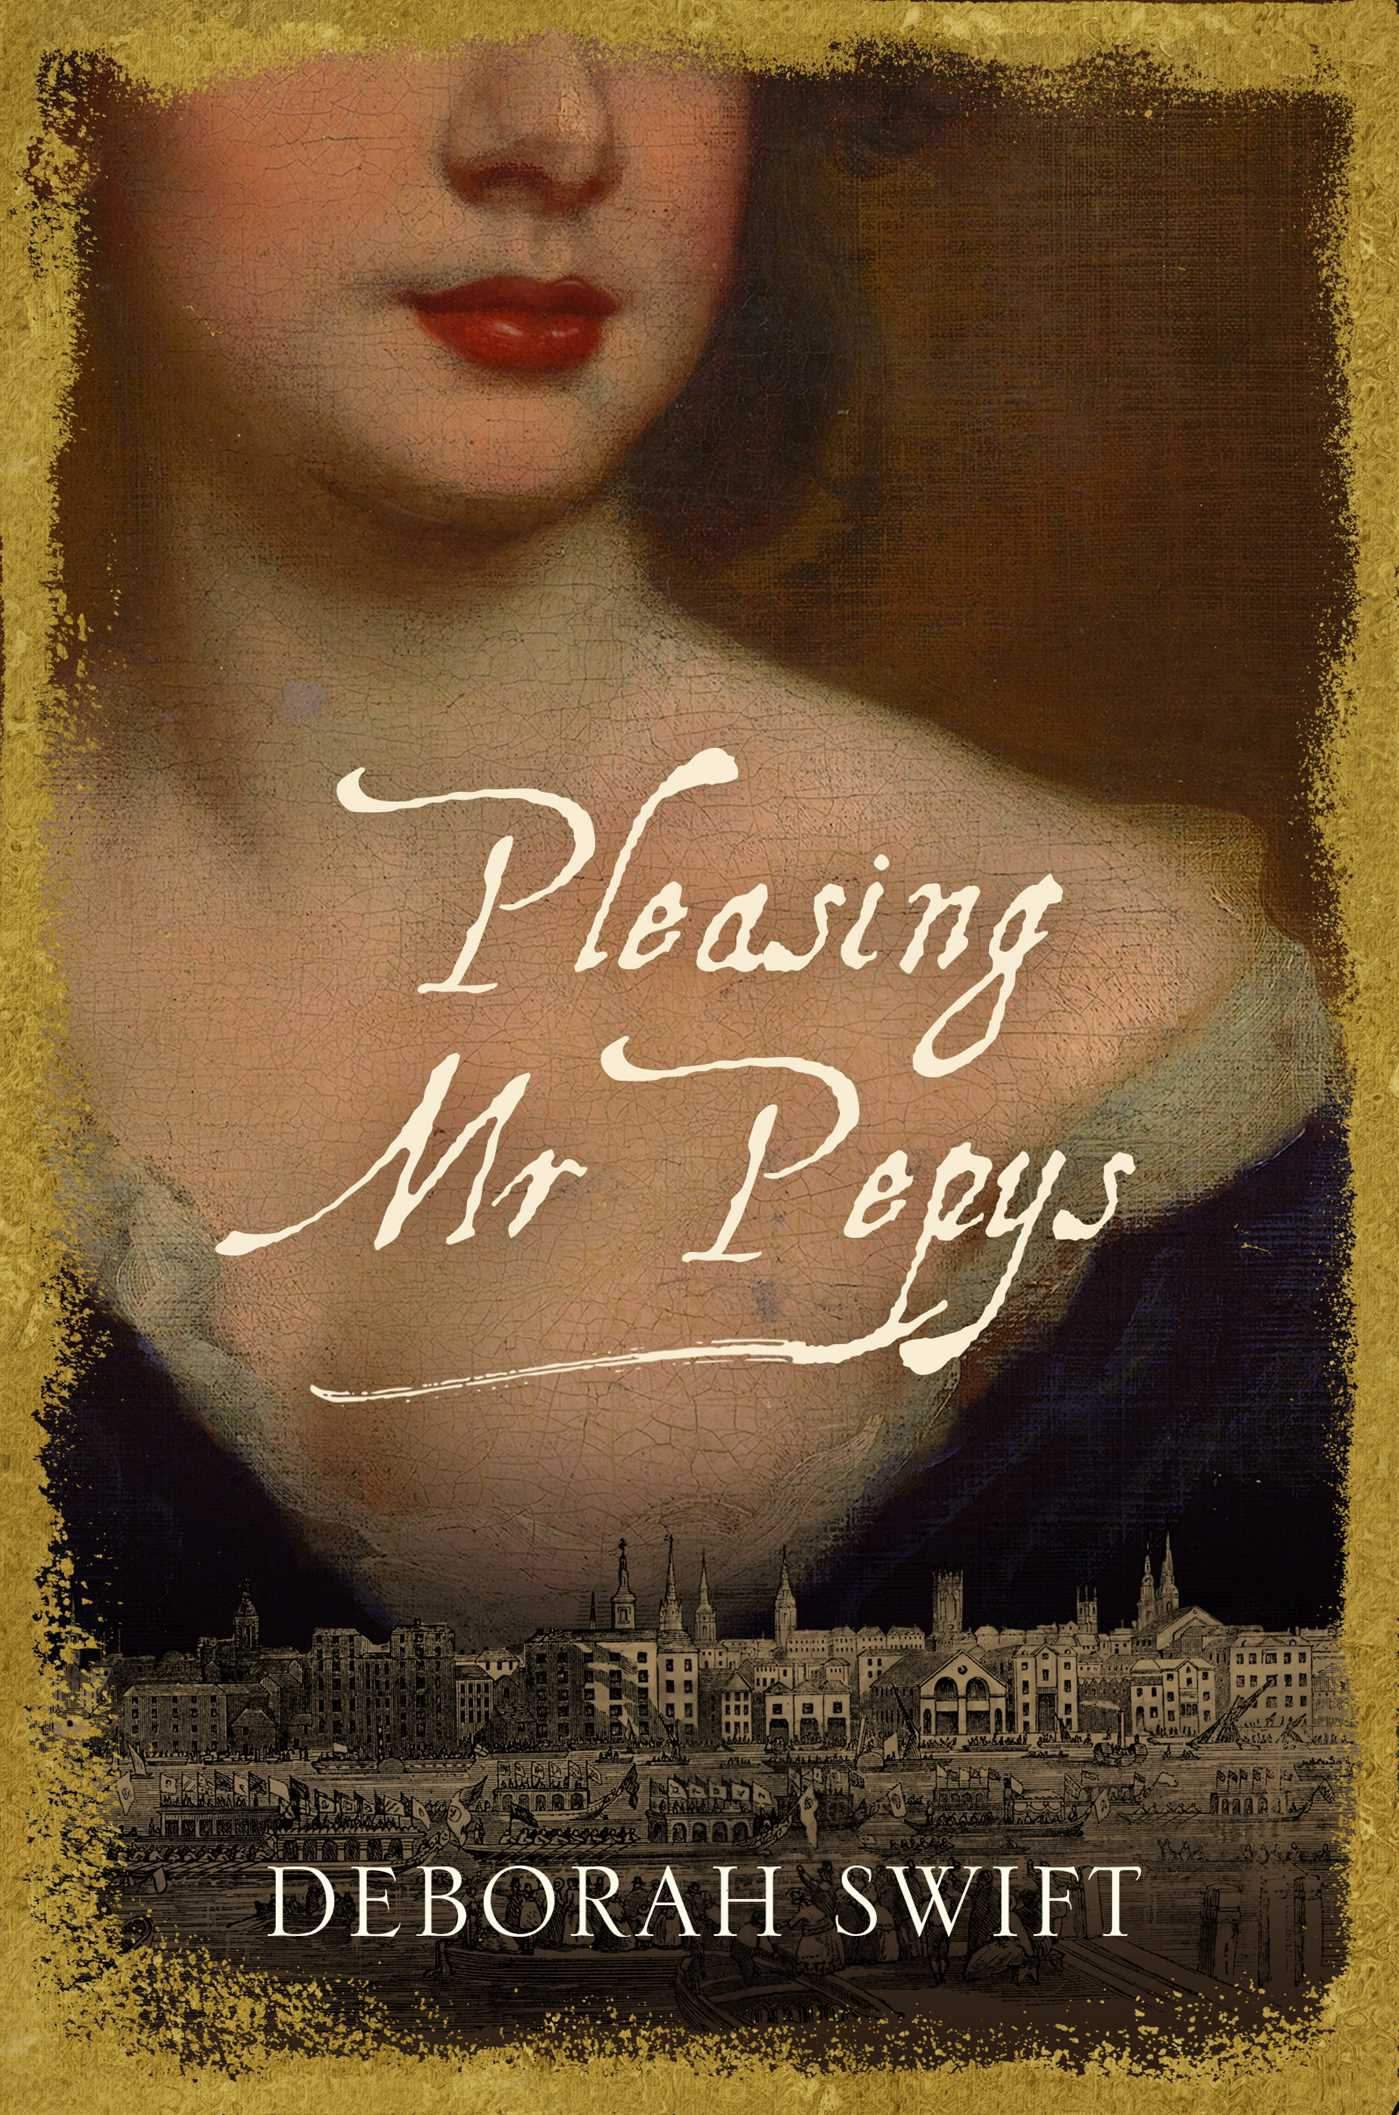 Pleasing mr pepys 9781682996317 hr